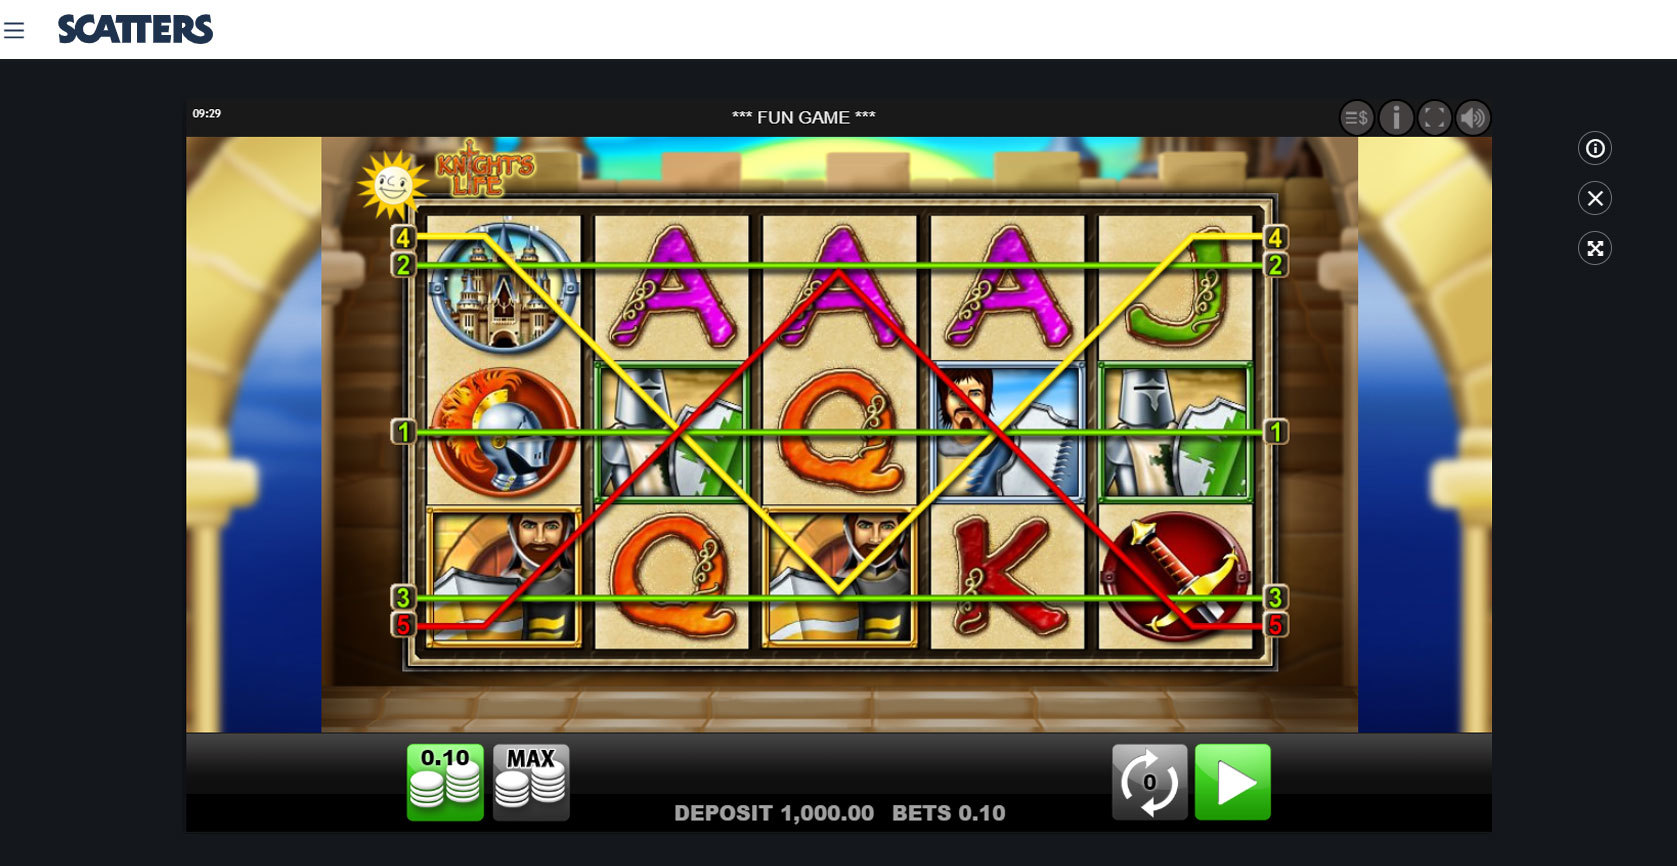 Play Knight's Life Slot by Merkur Free or Real Money at Scatters Casino